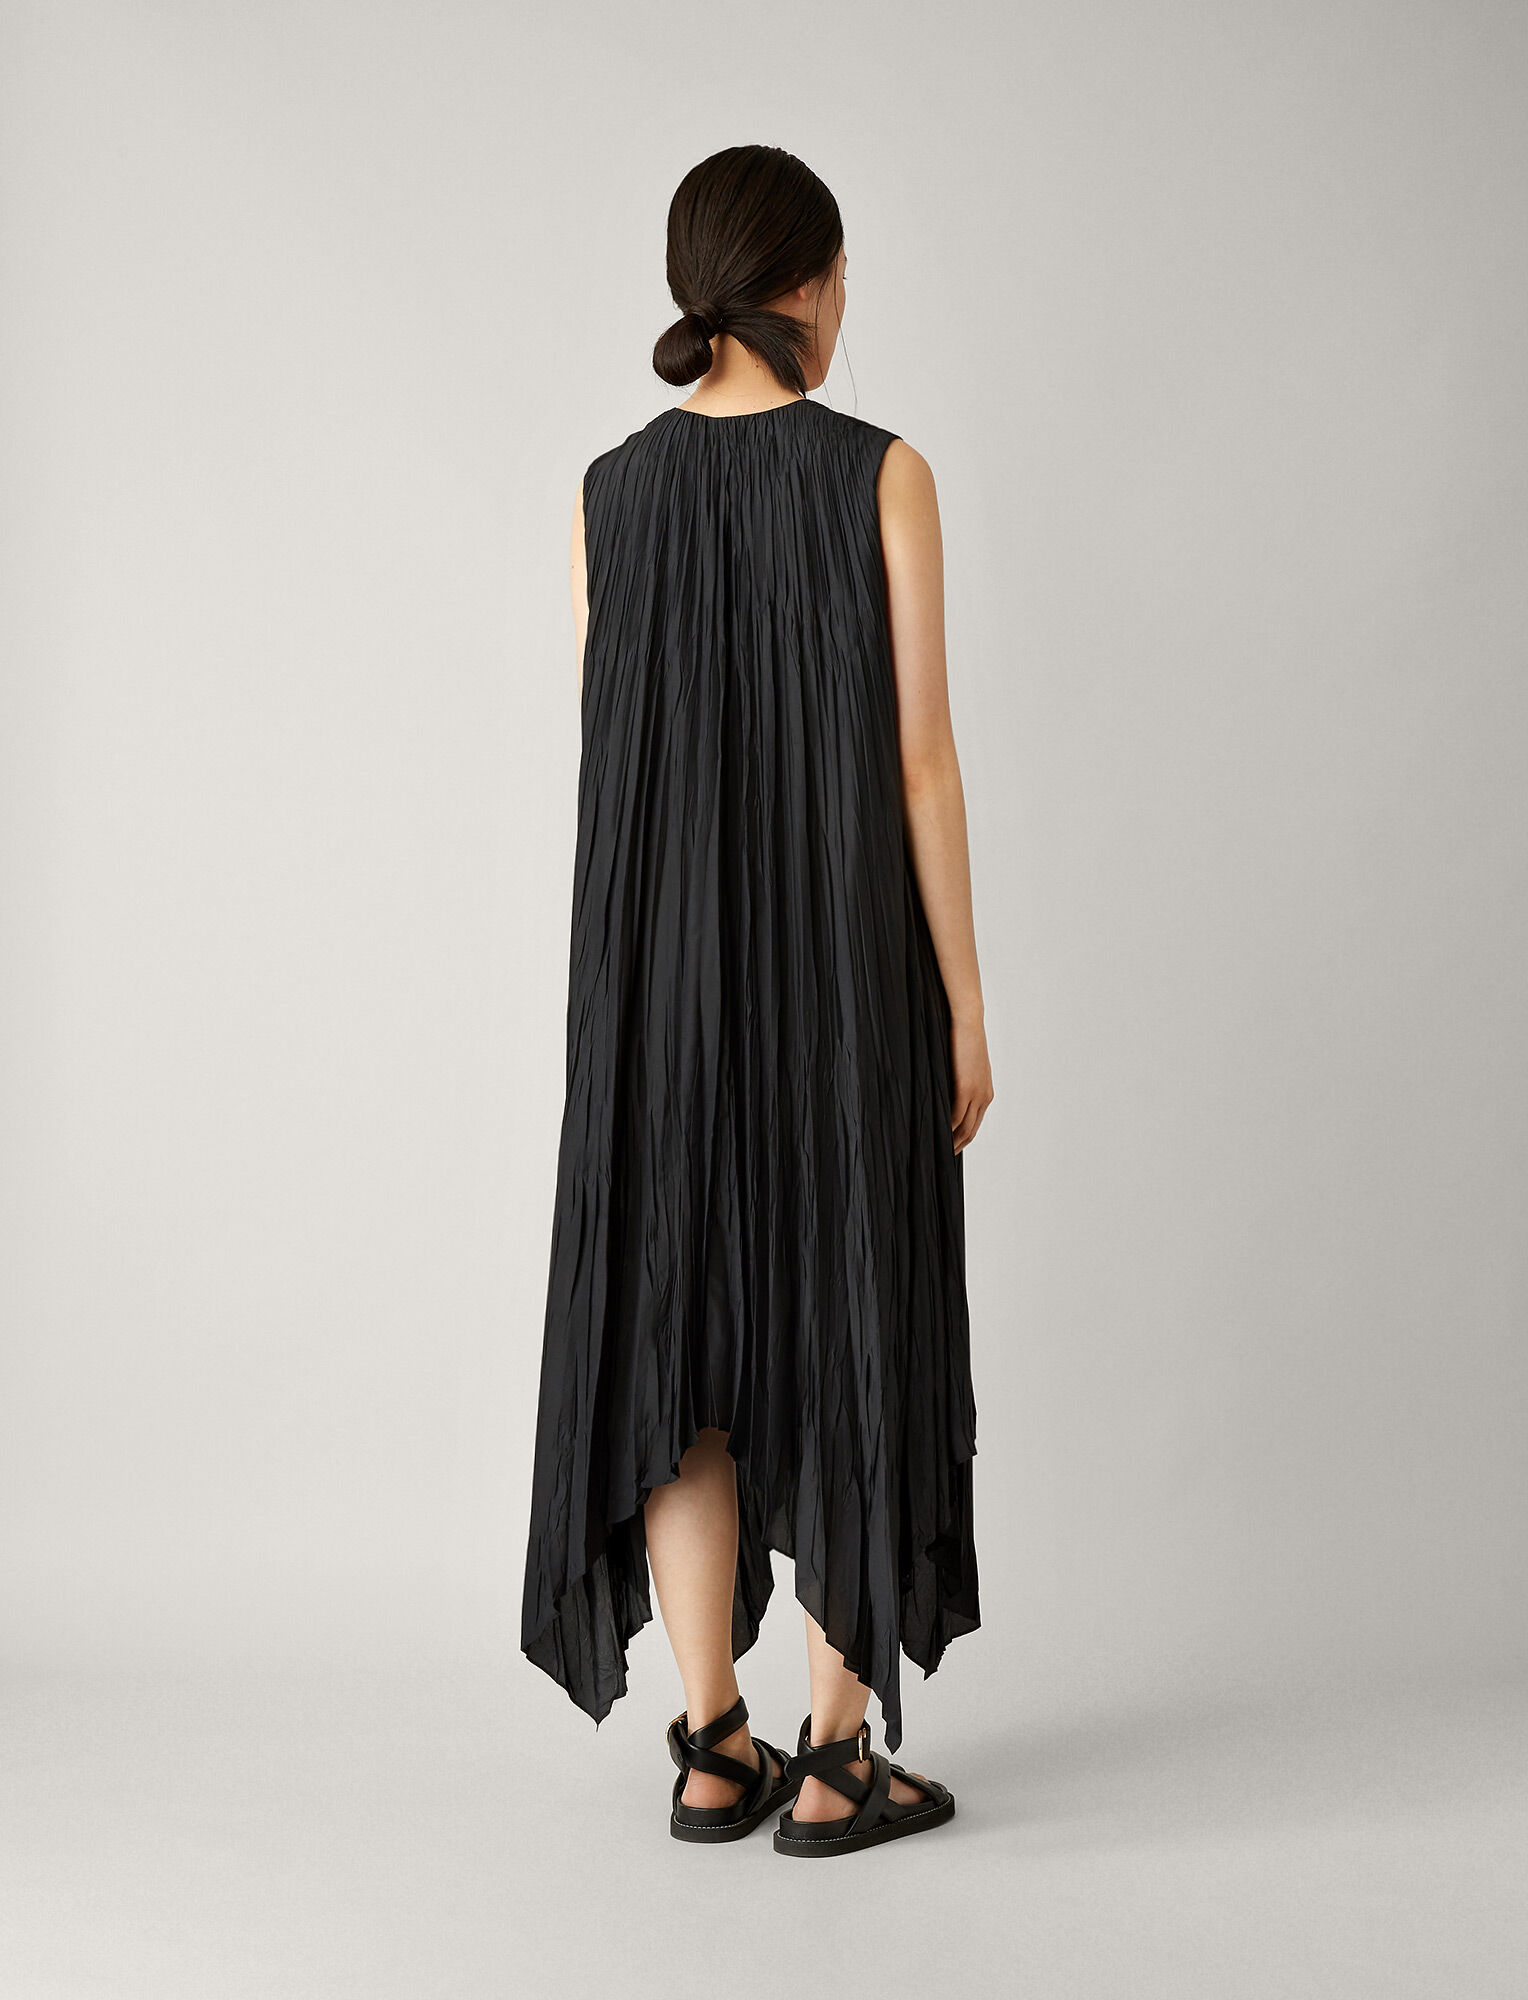 Joseph, Checker Silk Habotai Dress, in BLACK